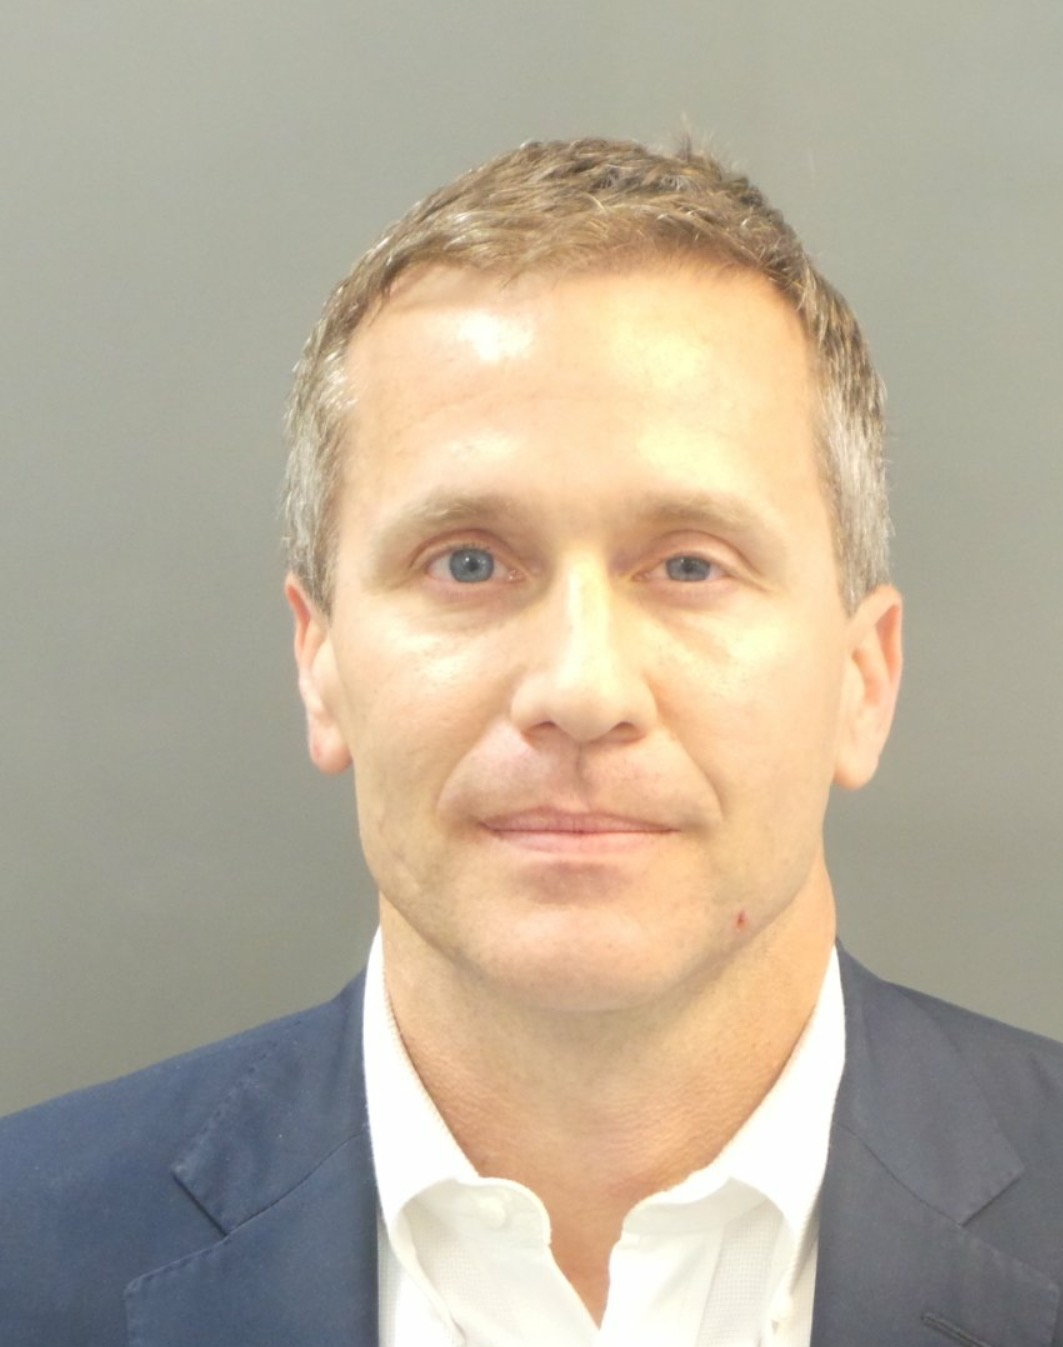 Woman Testifies Affair With Missouri Governor Was Not Always Consensual